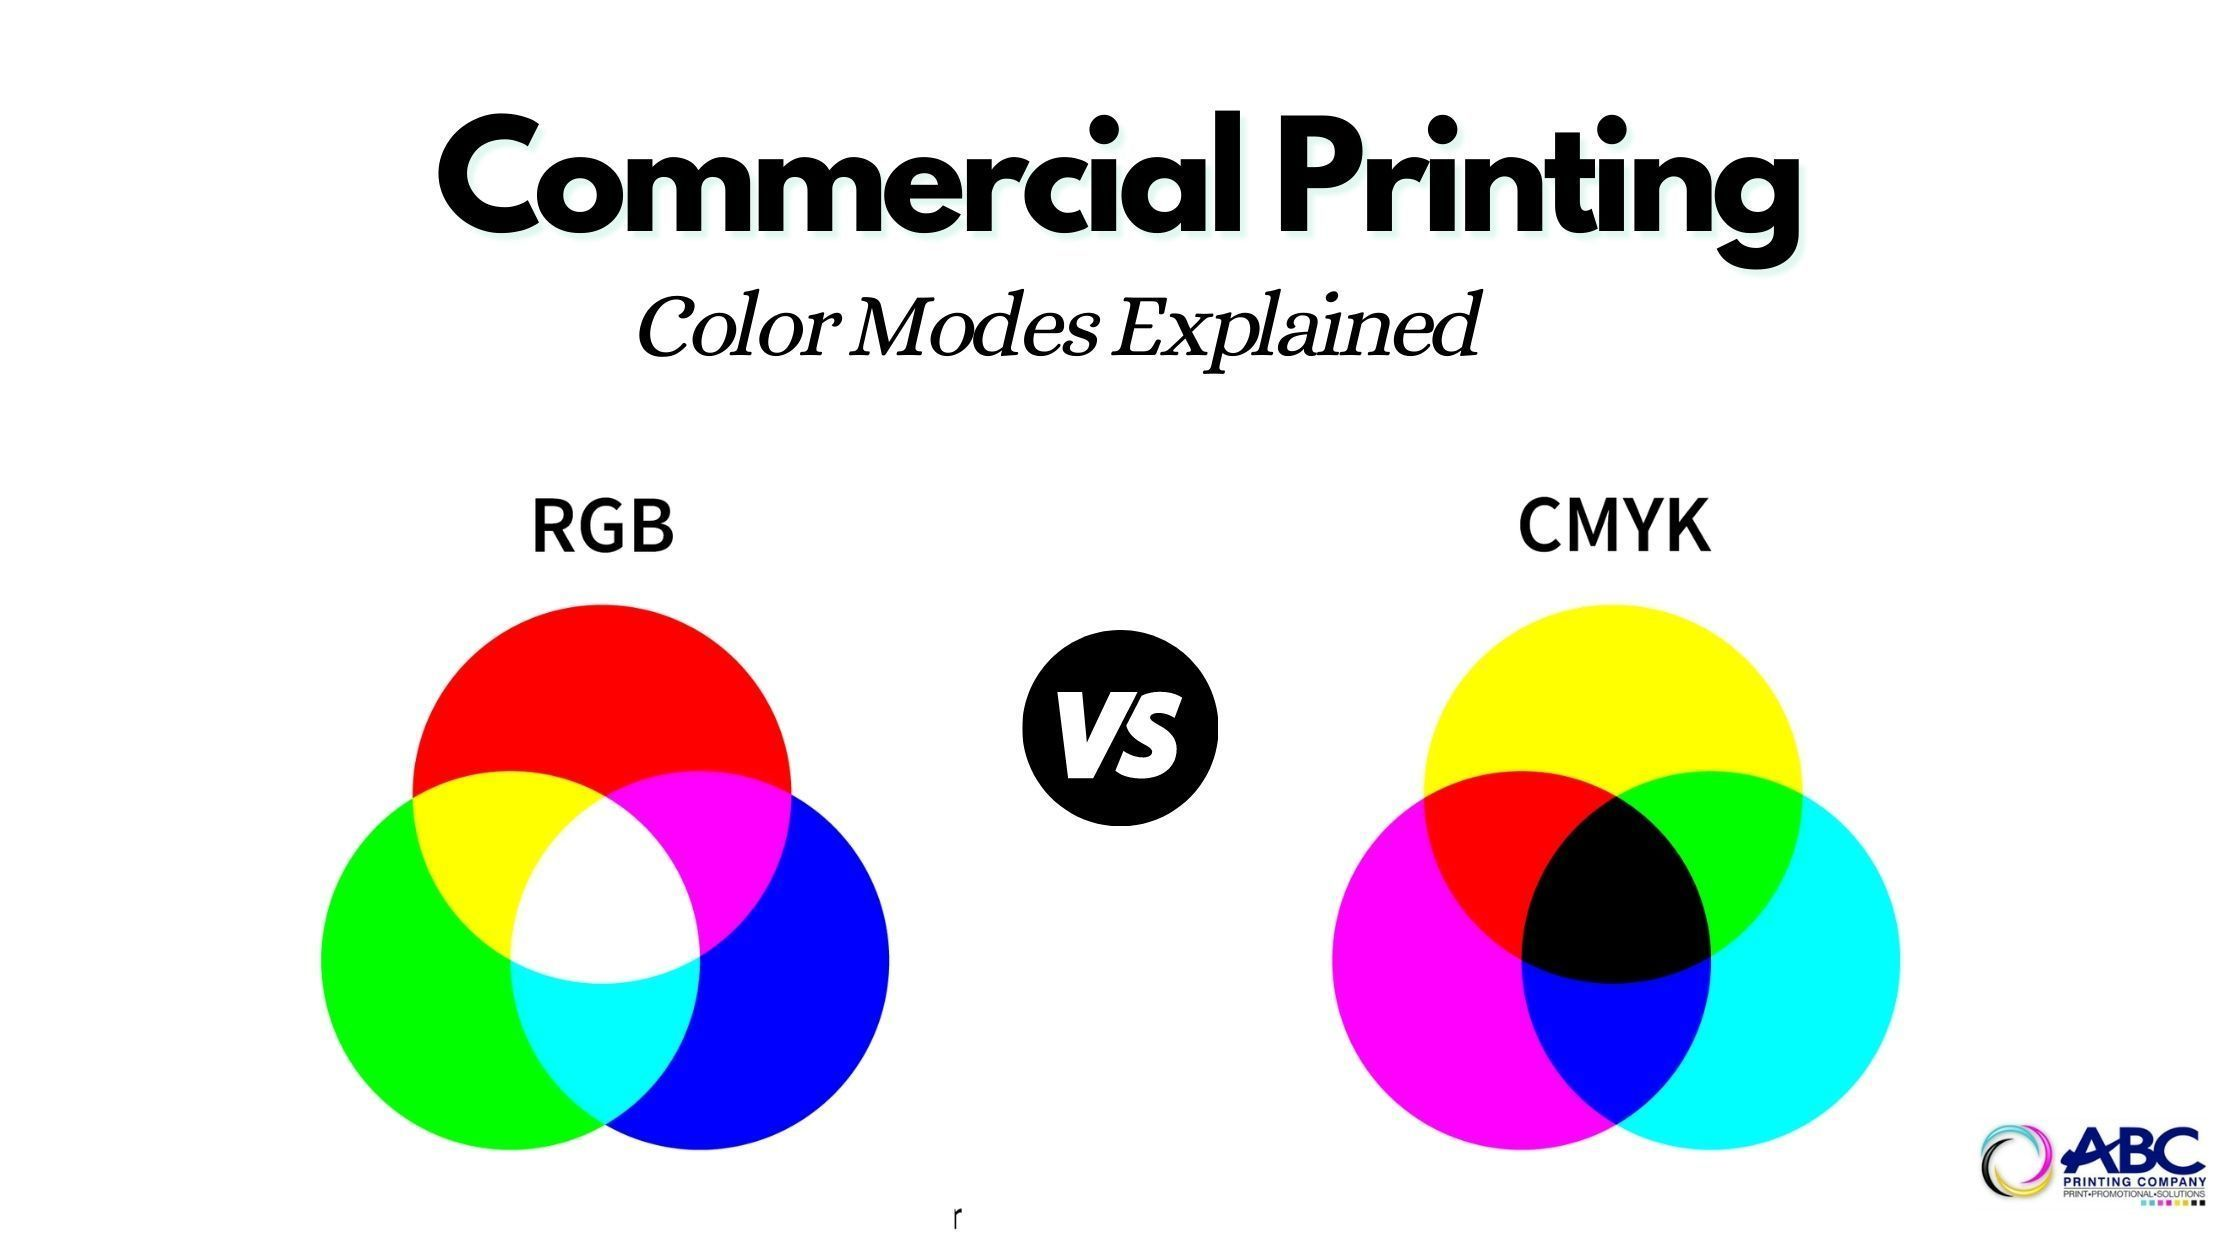 Commercial Printing: RGB and CMYK Color Modes Explained